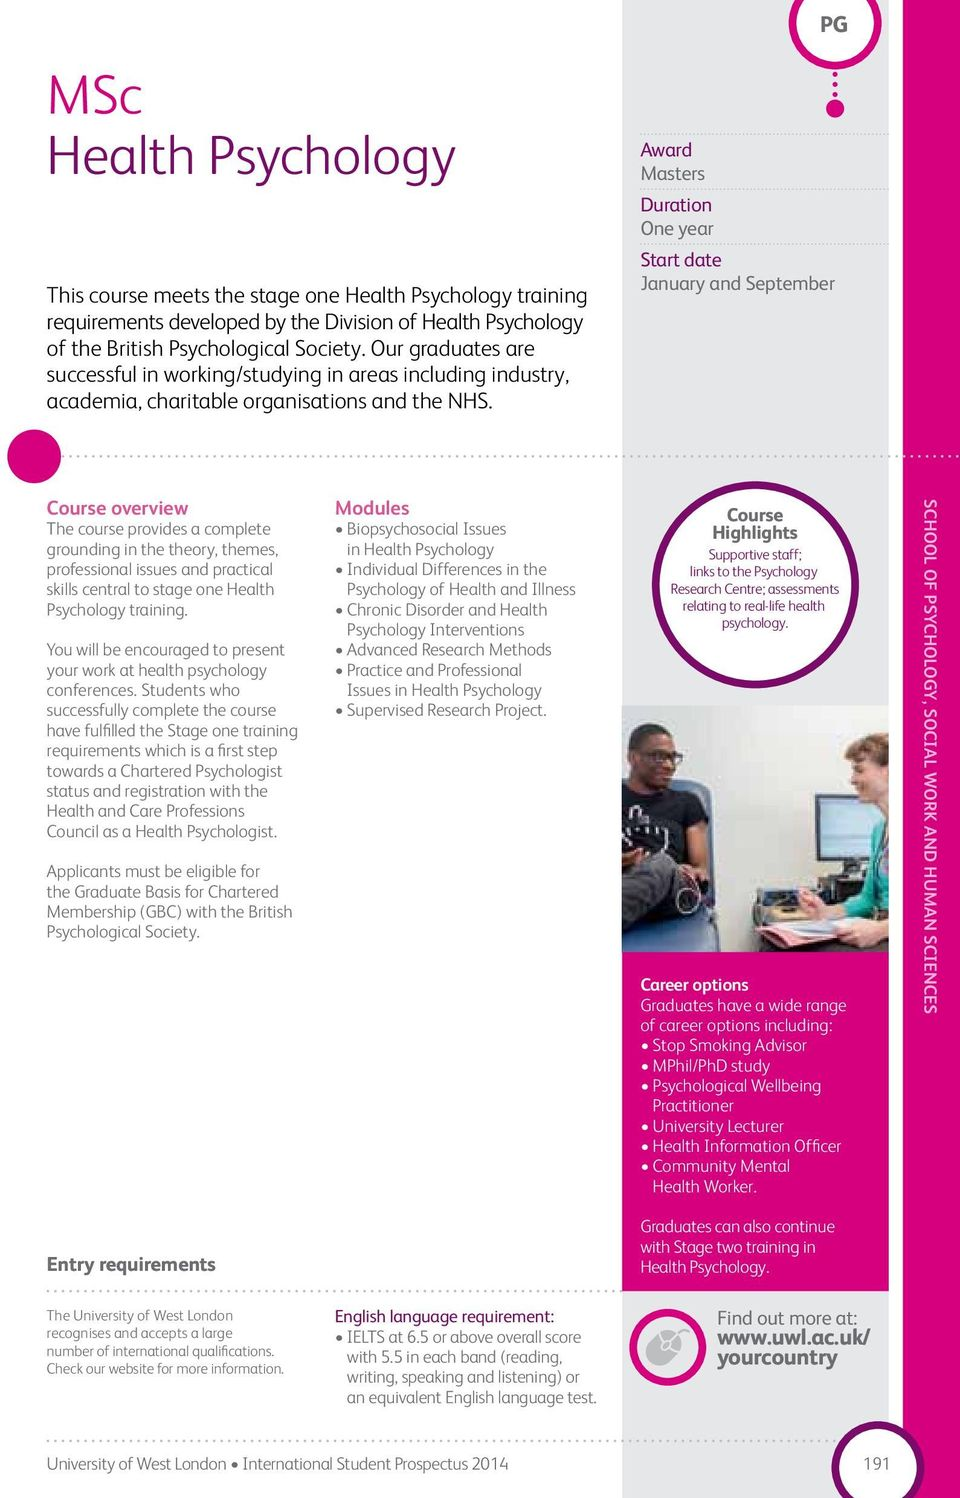 Masters One year January and overview The course provides a complete grounding in the theory, themes, professional issues and practical skills central to stage one Health Psychology training.